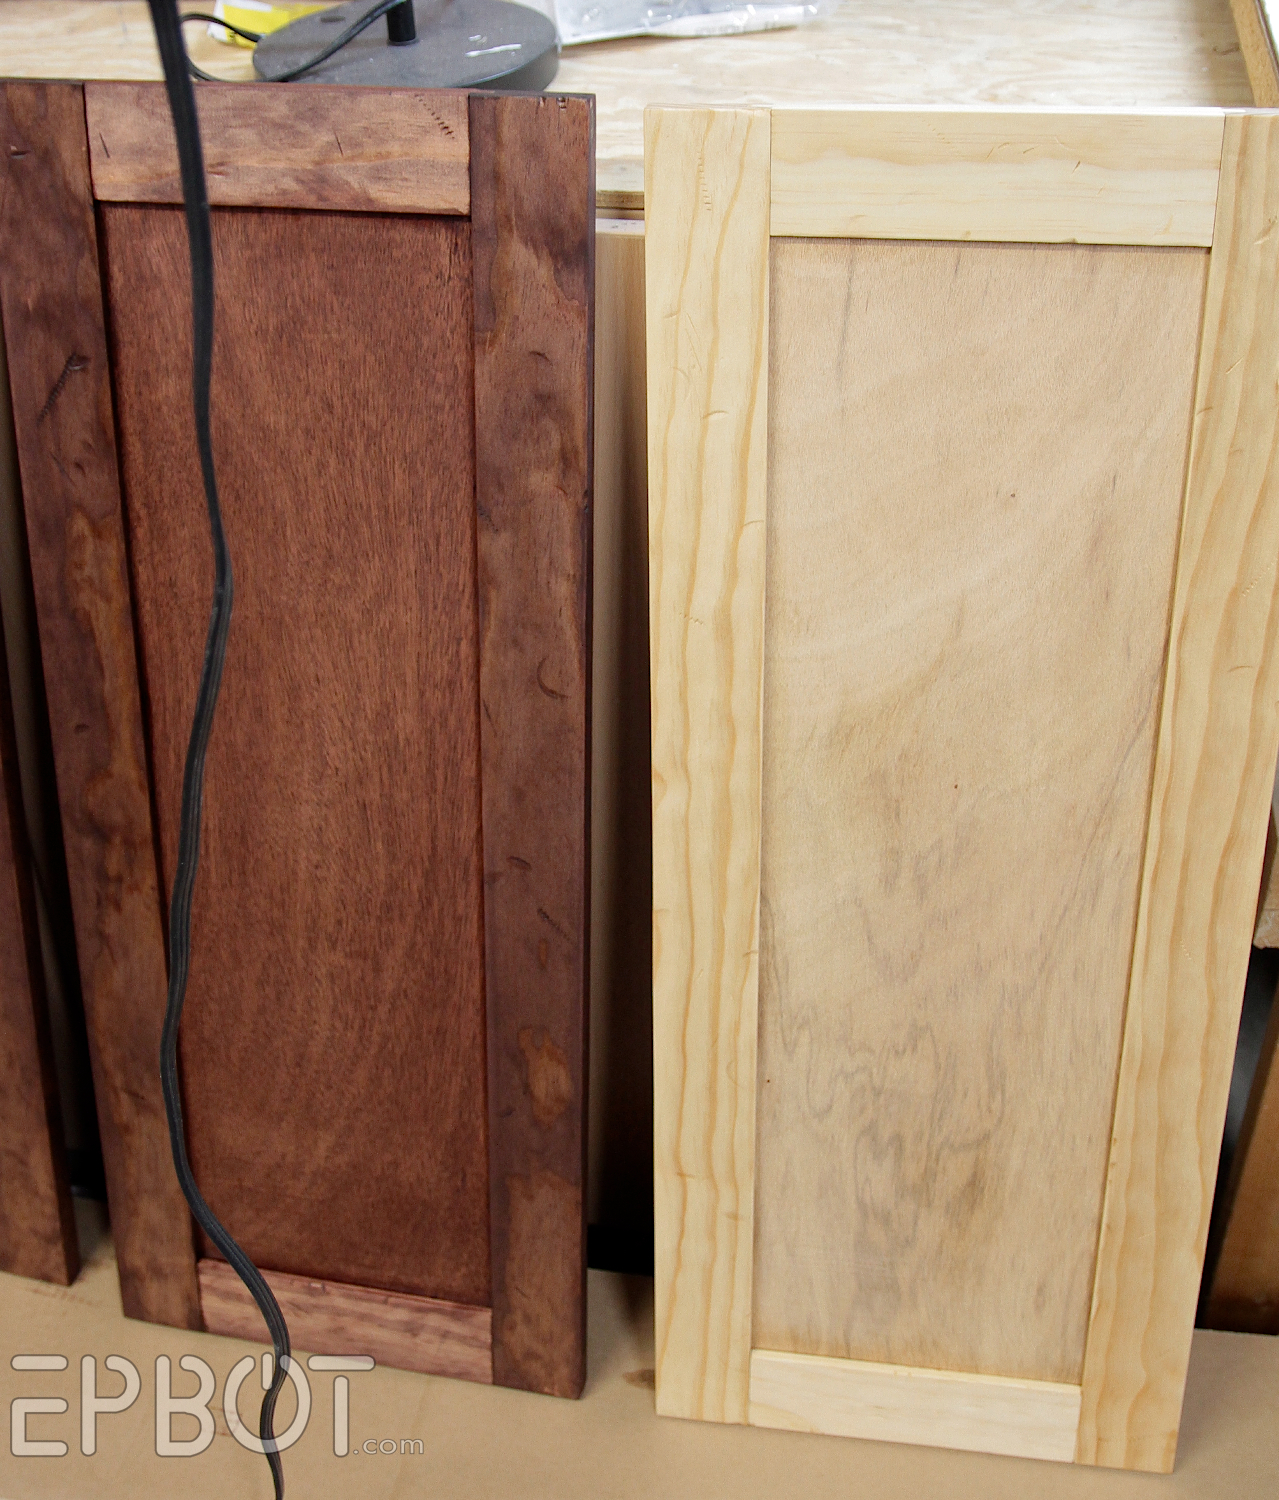 How To Make A Kitchen Cabinet: EPBOT: DIY Vintage Rustic Cabinet Doors